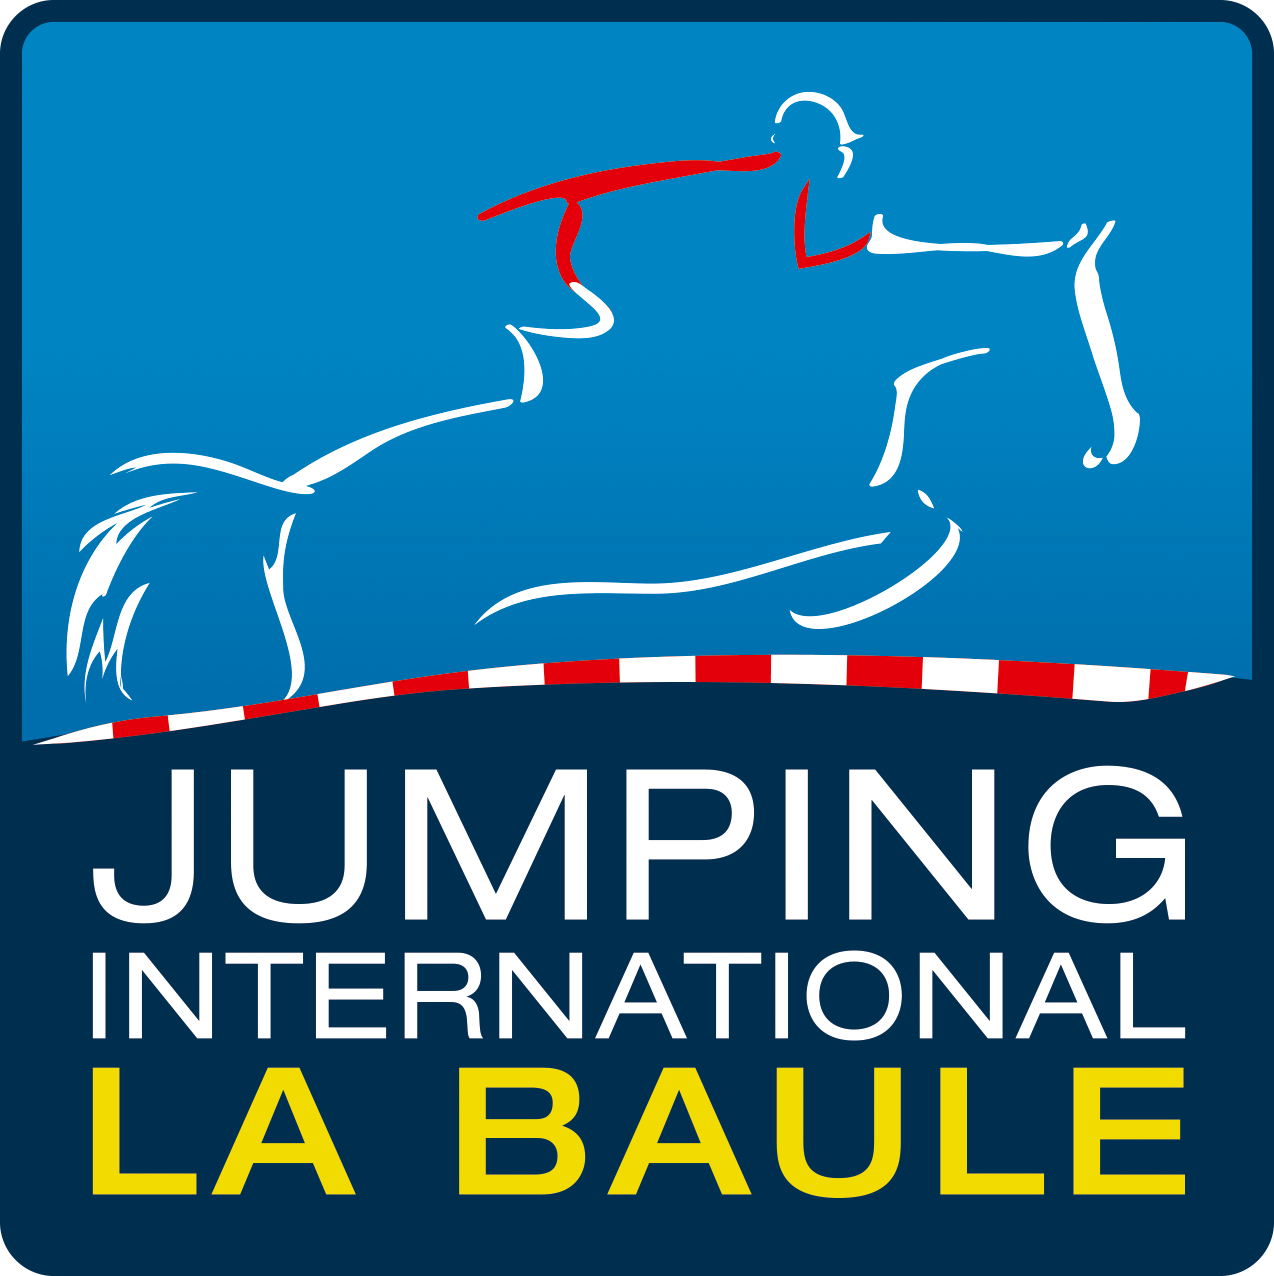 Jumping International La Baule